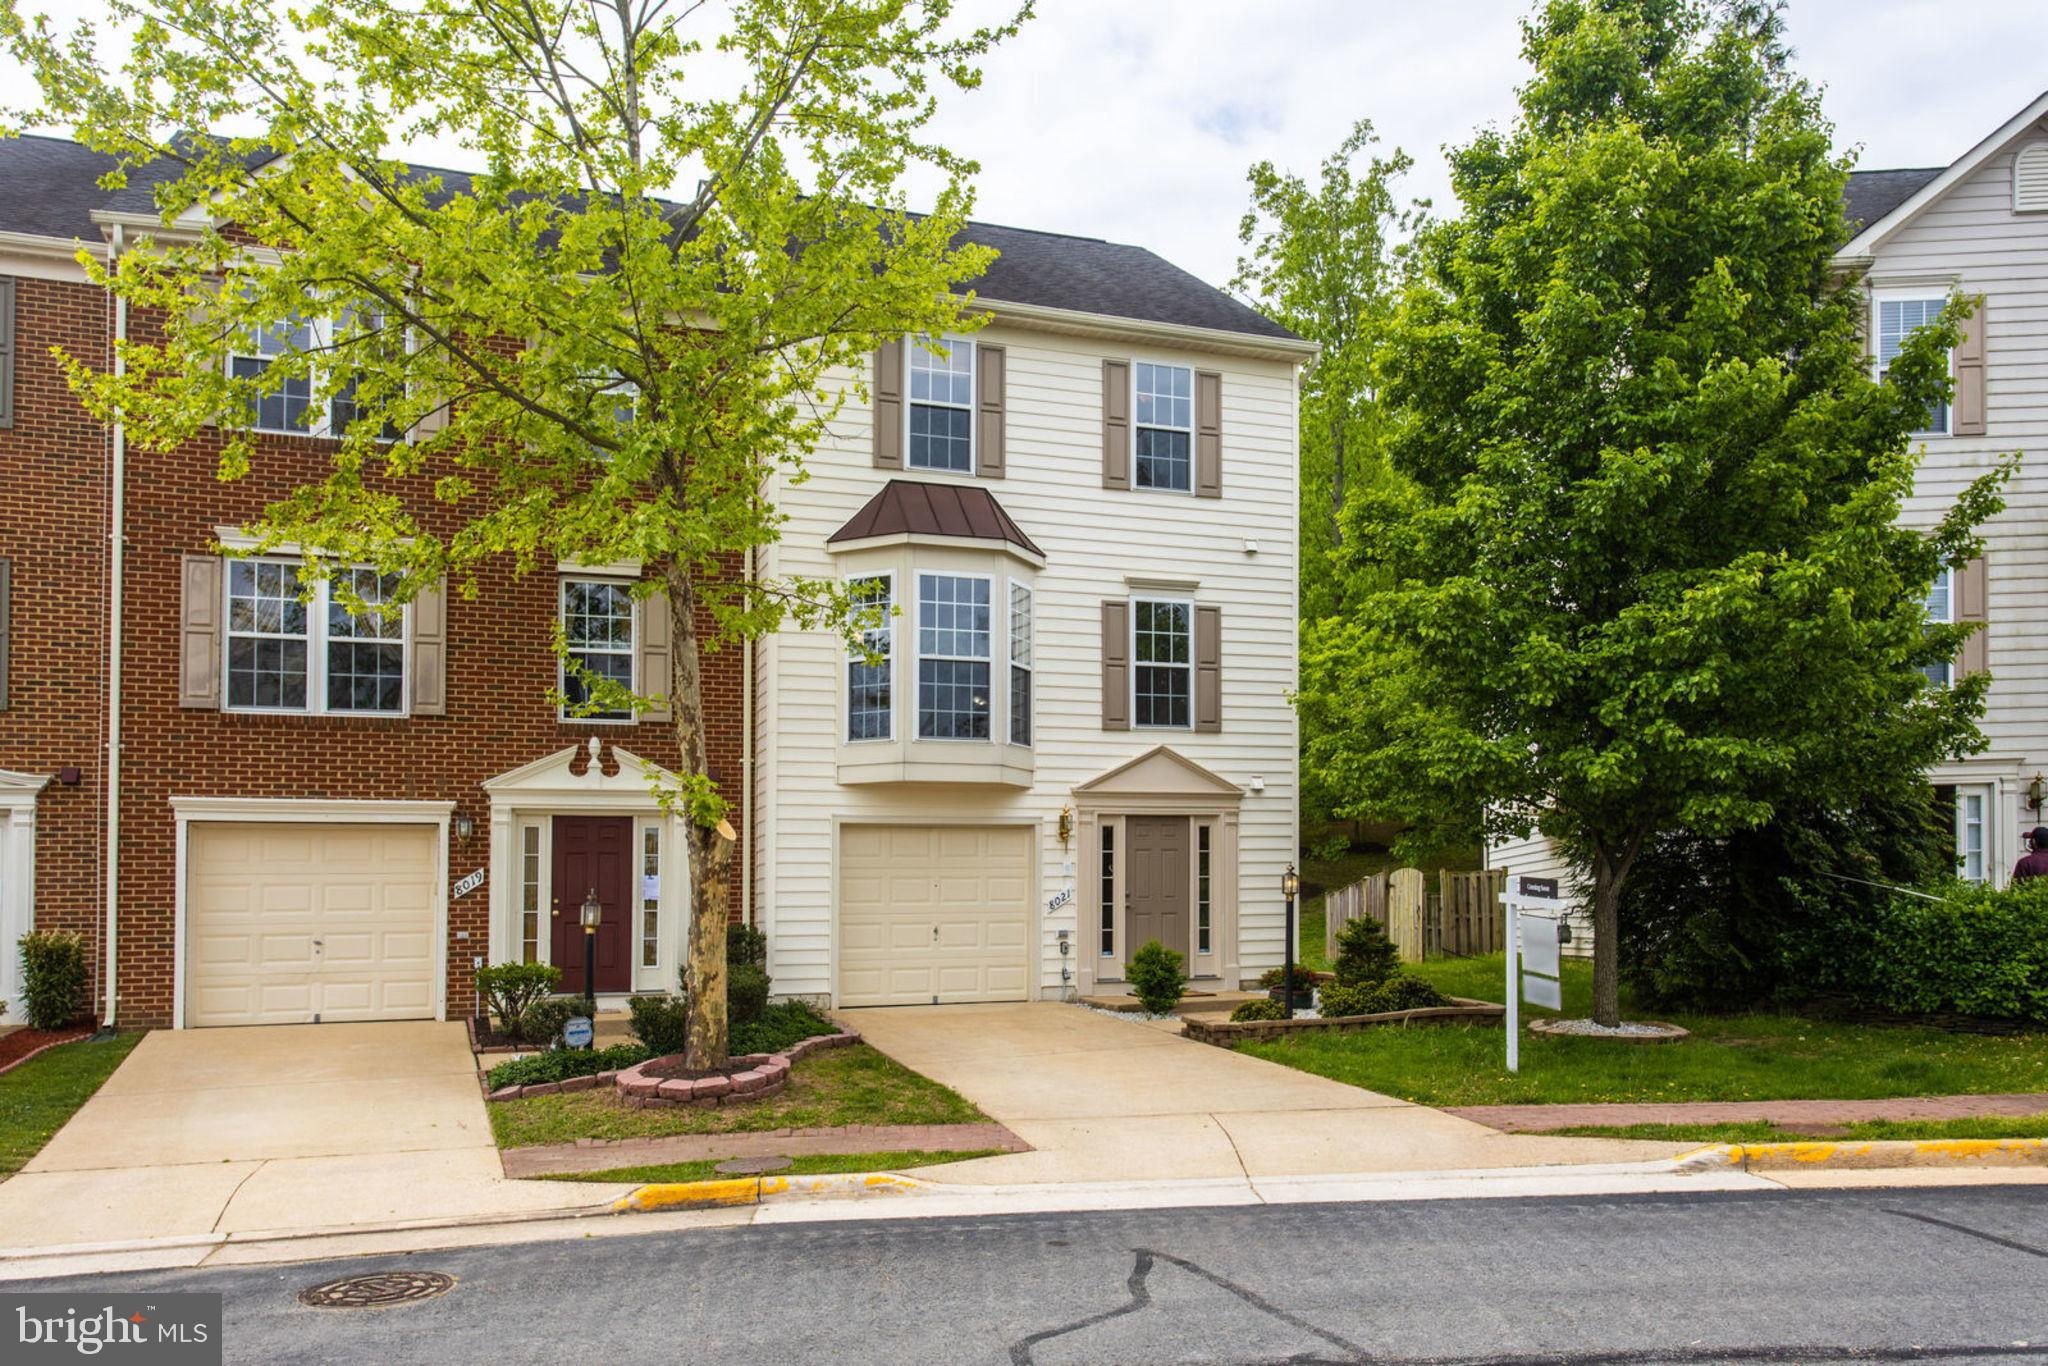 Stunning 3 Level w/Extension, 1 Car Garage, End Unit Townhome in Lorton Station!  Main level features hardwood flooring. Large gourmet kitchen w/ center island & backsplash. Remodeled bathrooms w/ granite counters. Custom lighting fans, Large recreation area,  media room or office are in basement. Bump out area could be used as 4th bedroom w/ custom sliding glass doors. Home equipped w/ Bose surround sound. Brand new carpet on the basement and bedroom level. Deck & Fenced in Yard. **Convenient to VRE, 95 & Shopping.